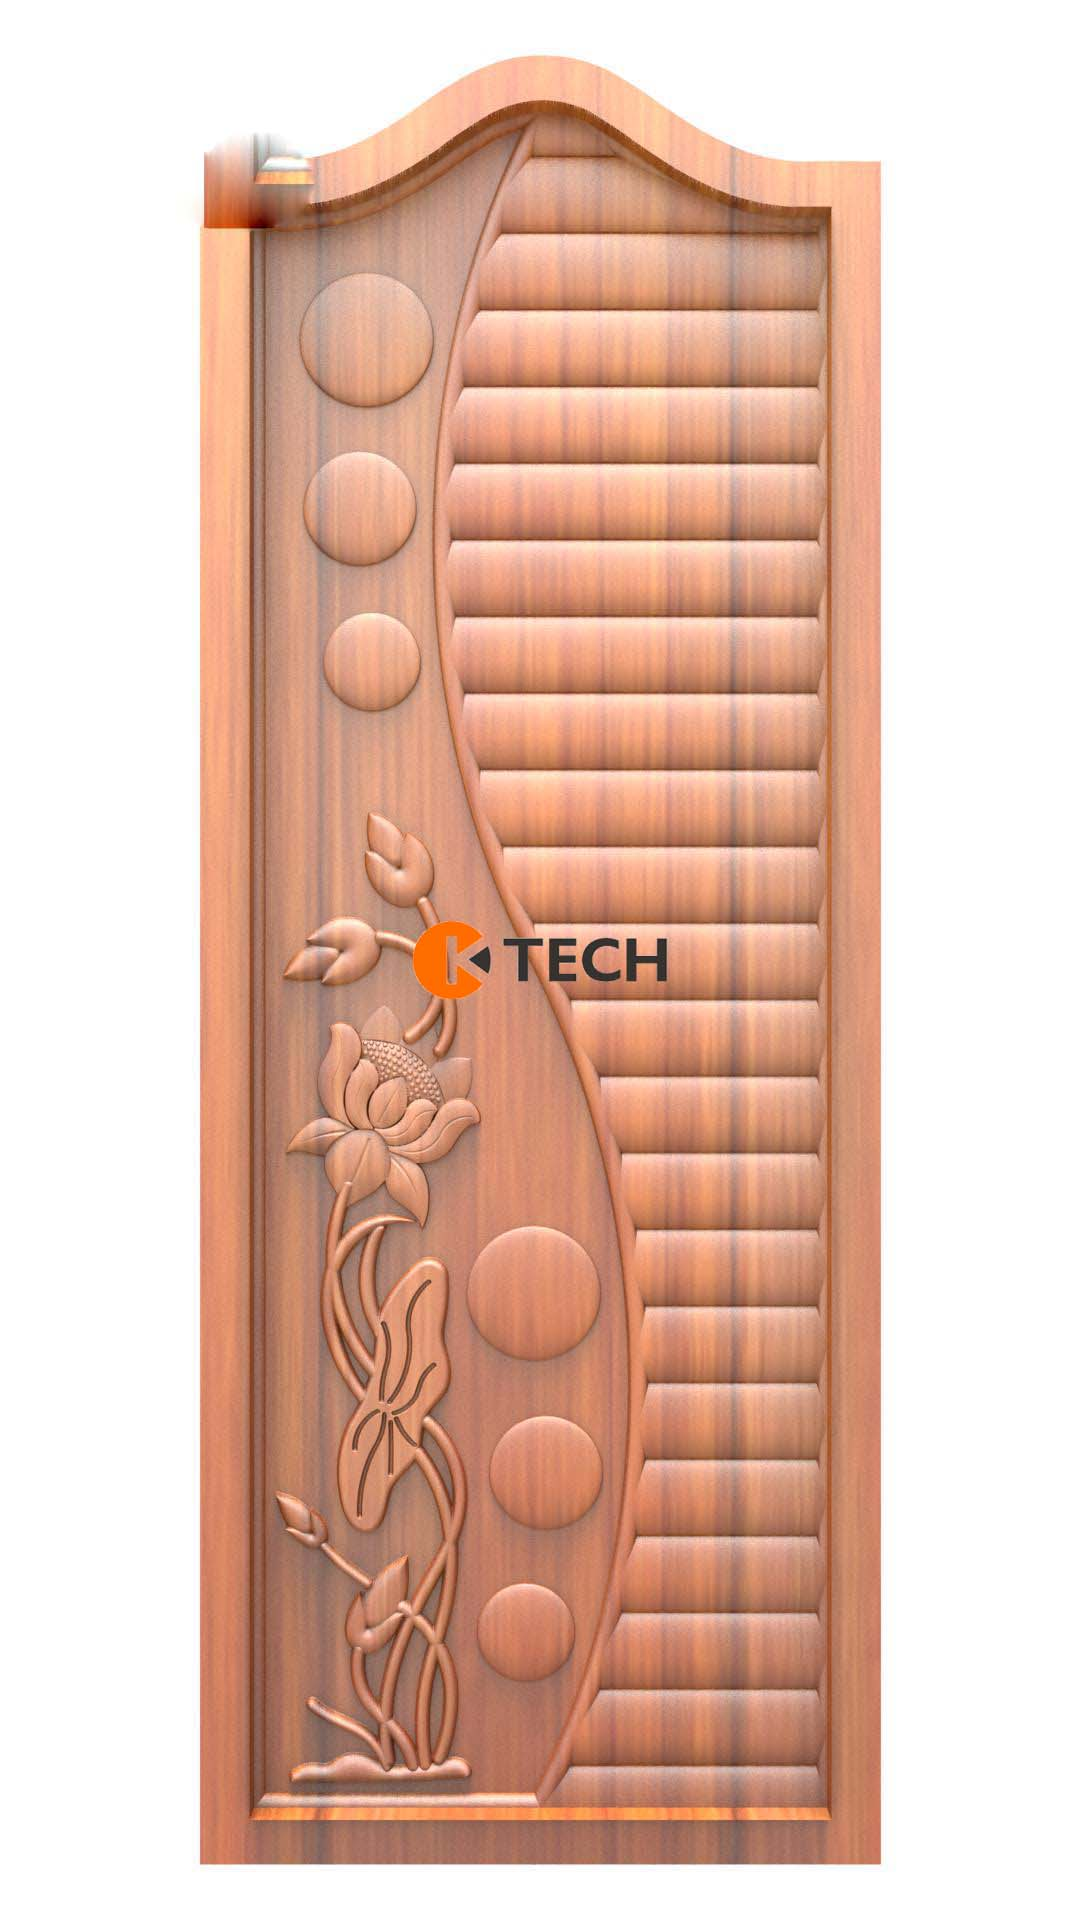 K-TECH CNC Doors Design 62